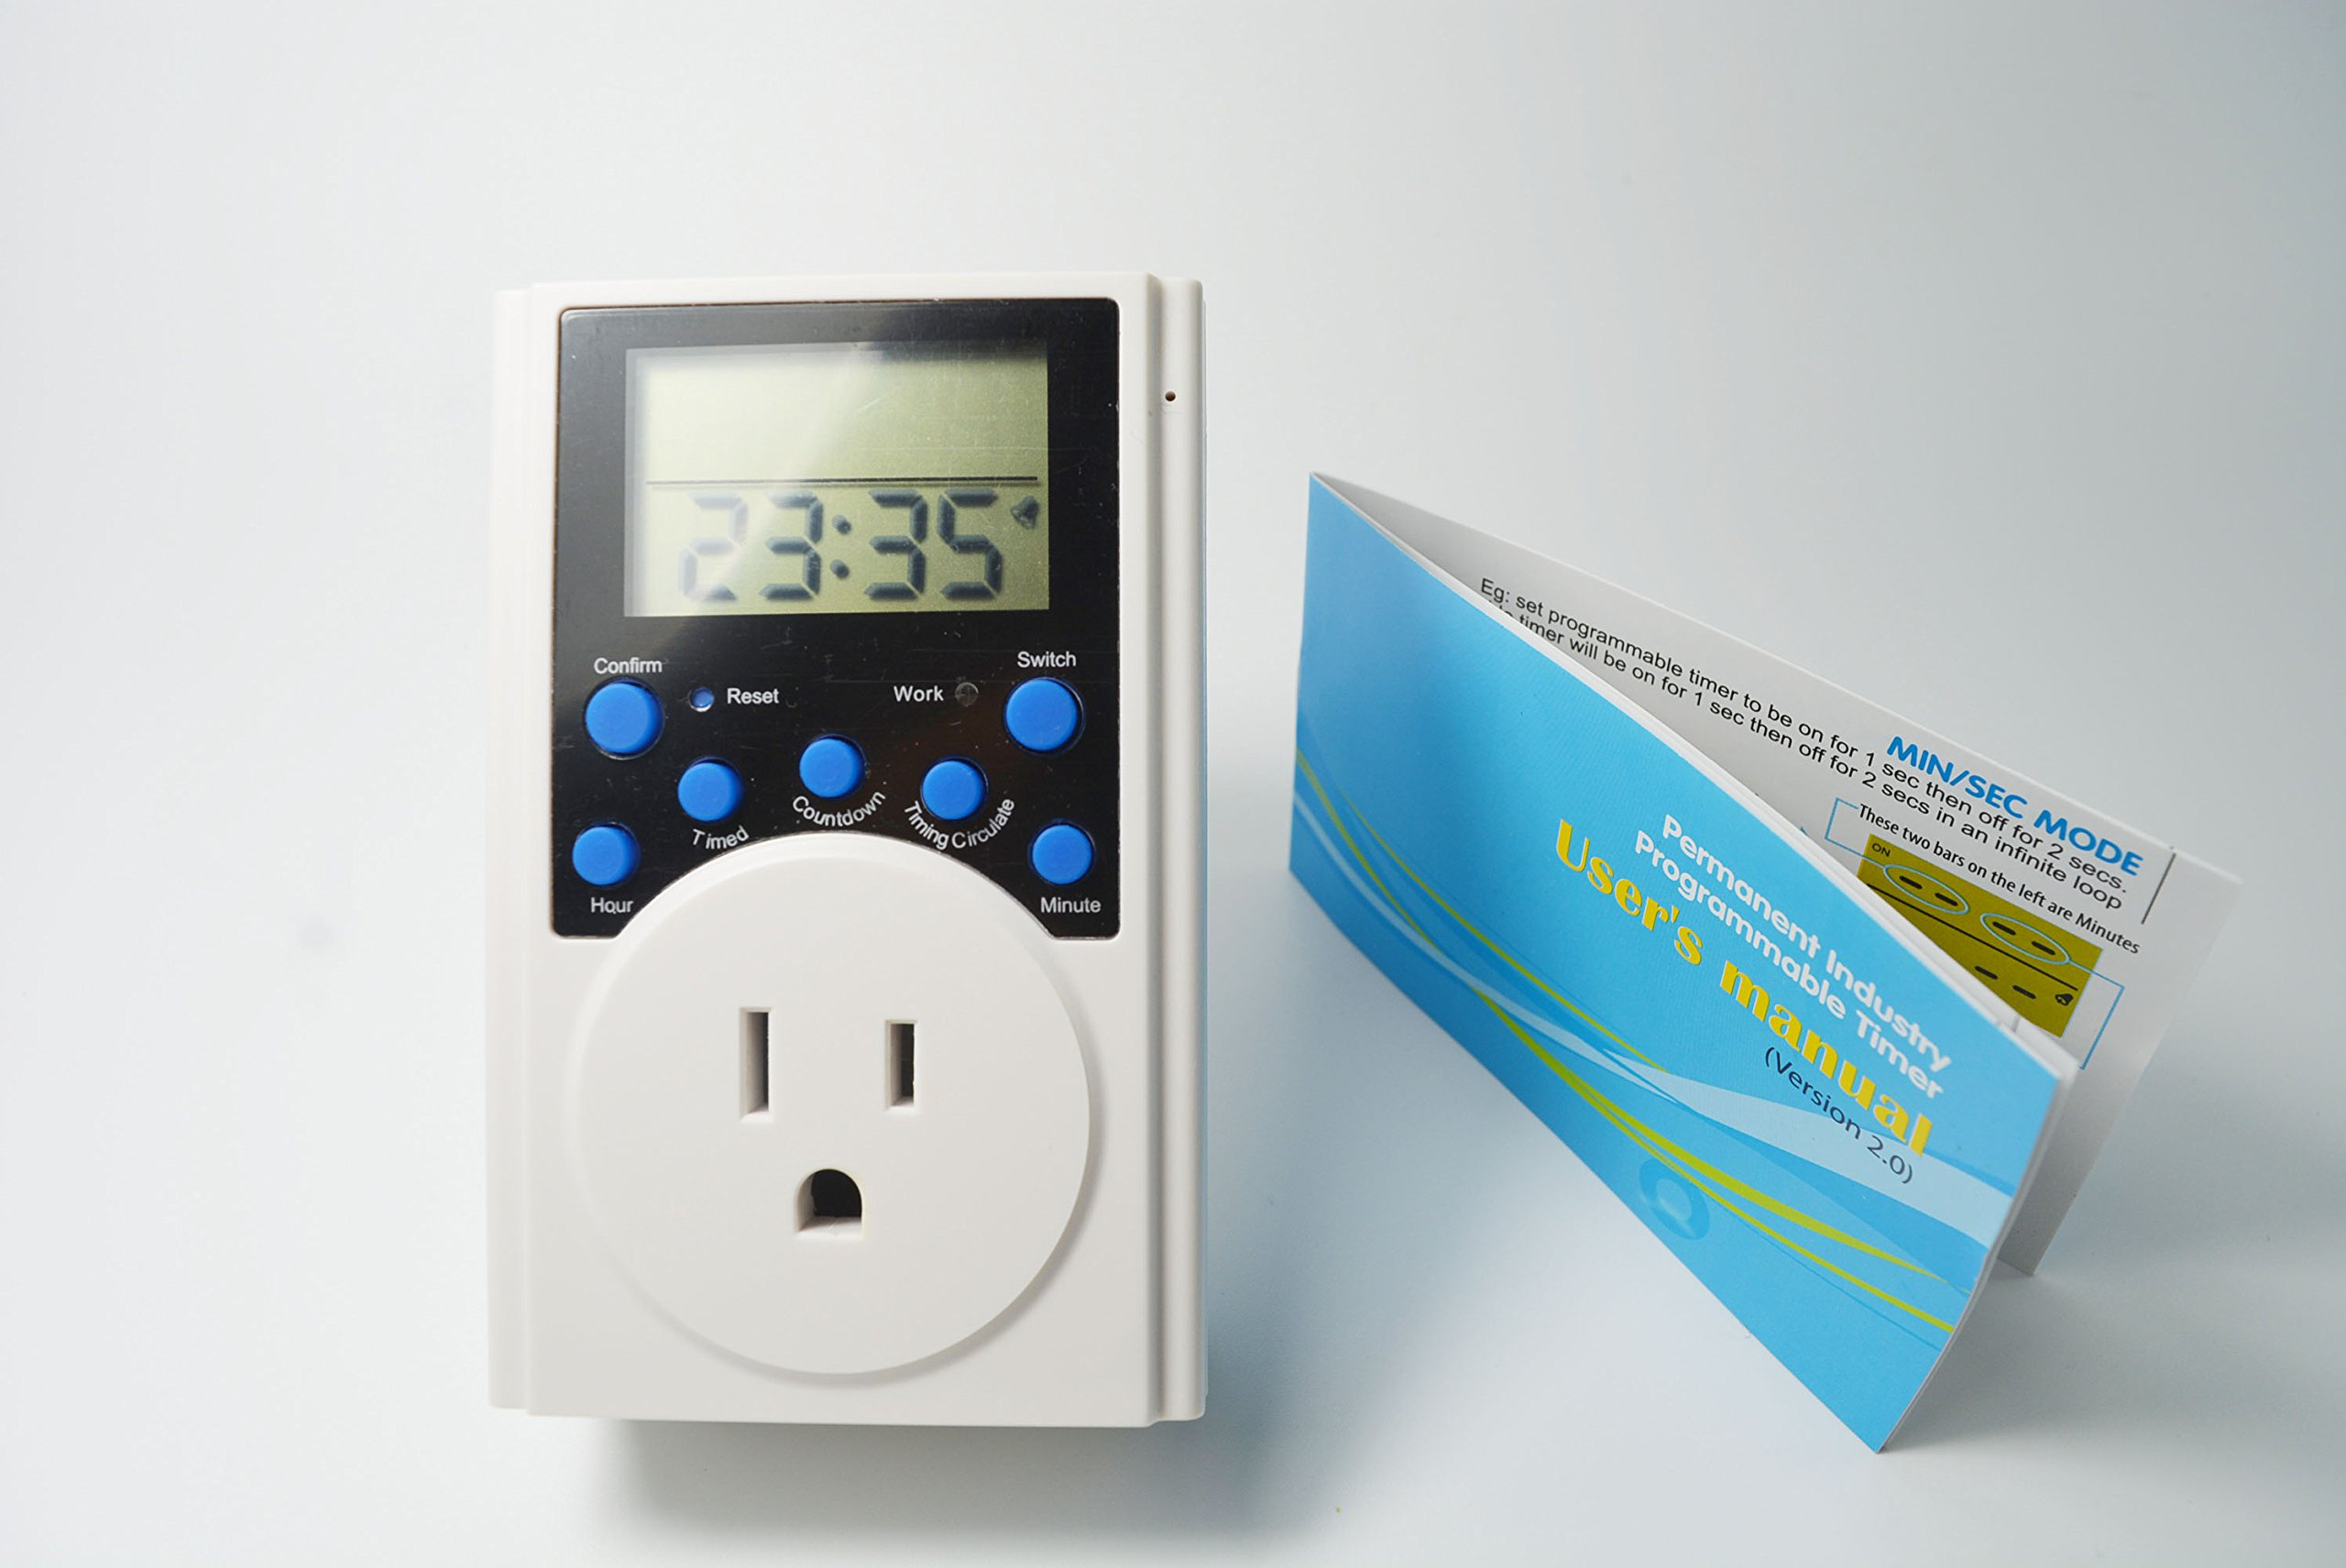 Permanent Plug-in Programmable Timer outlet wall plug in timer Count Down on and count down off Minimum setting 1 second with LCD screen infinite loop latest version by Permanent